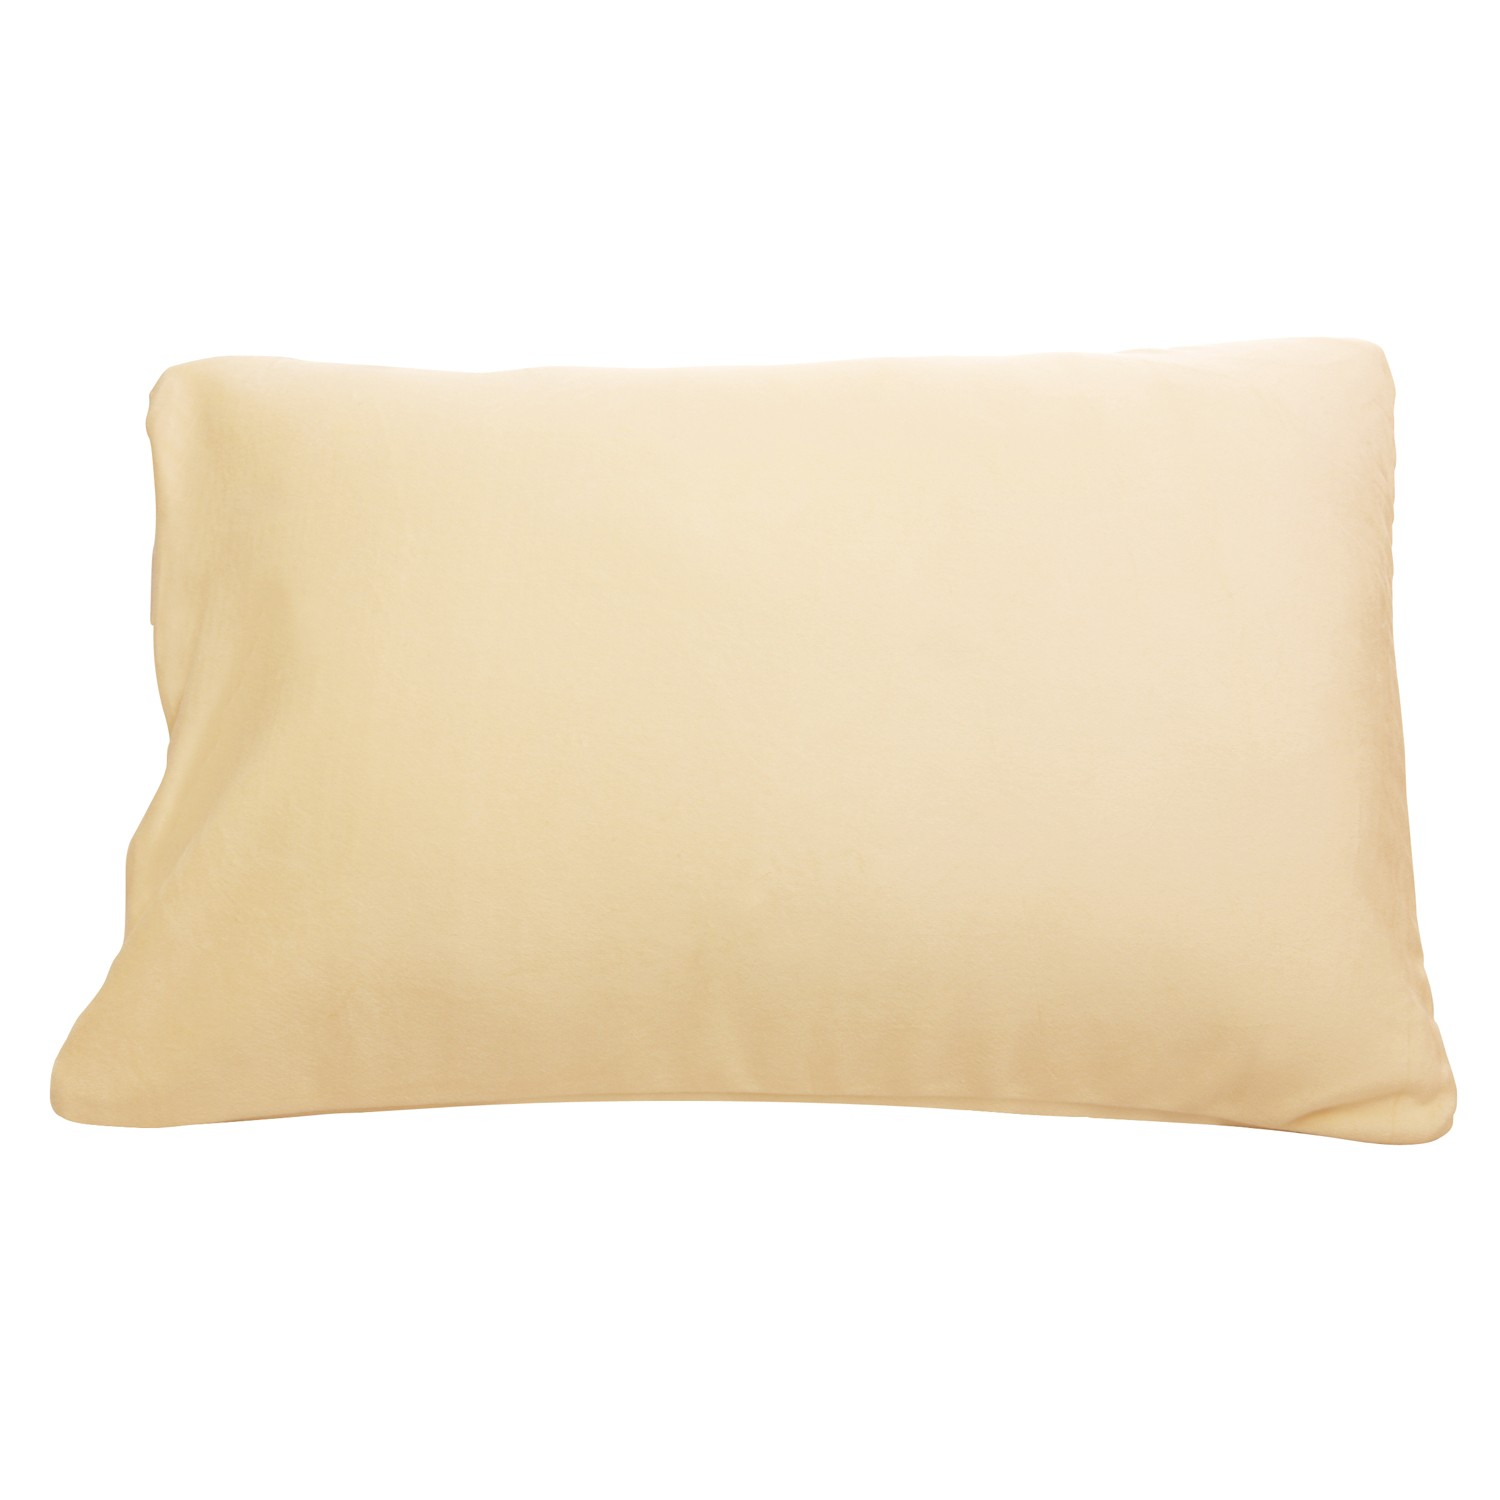 Sharper Image Traditional Memory Foam Pillow : Comfort Soothe Memory Pillow